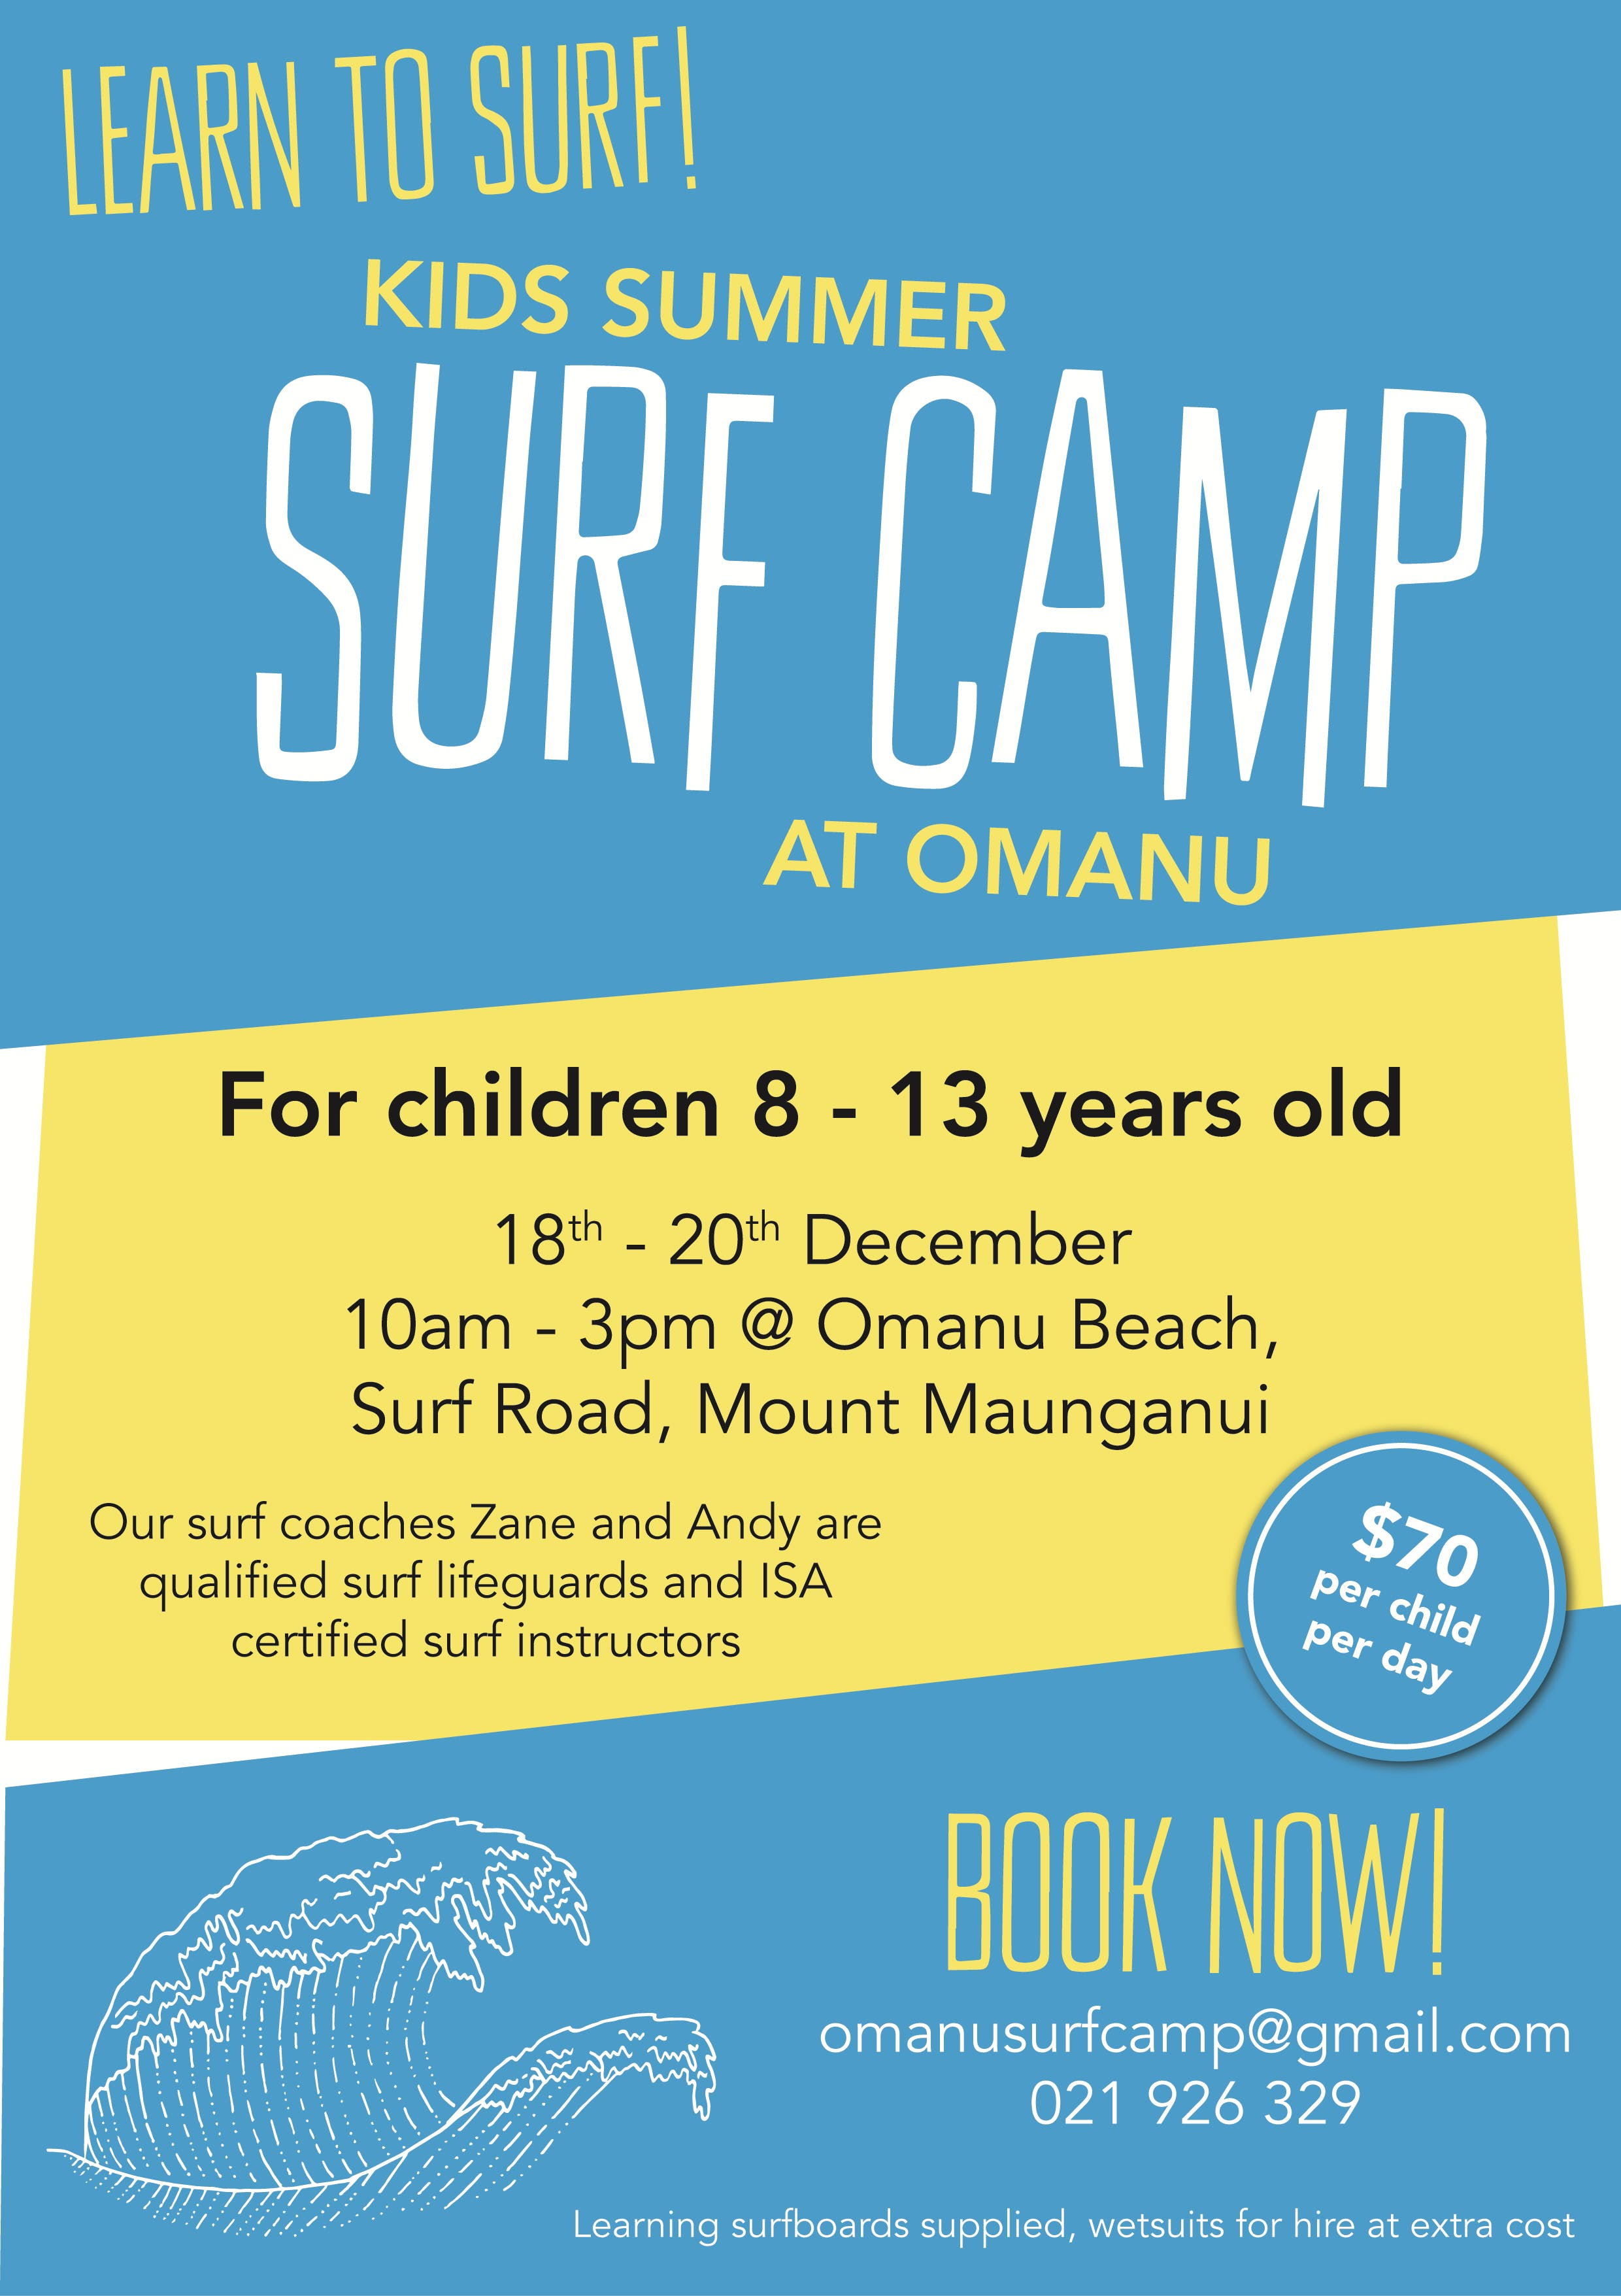 Surf camp, kids camp, summer surfing, Zane Winslade, rent a surfboard, learn to surf at Mount Maunganui